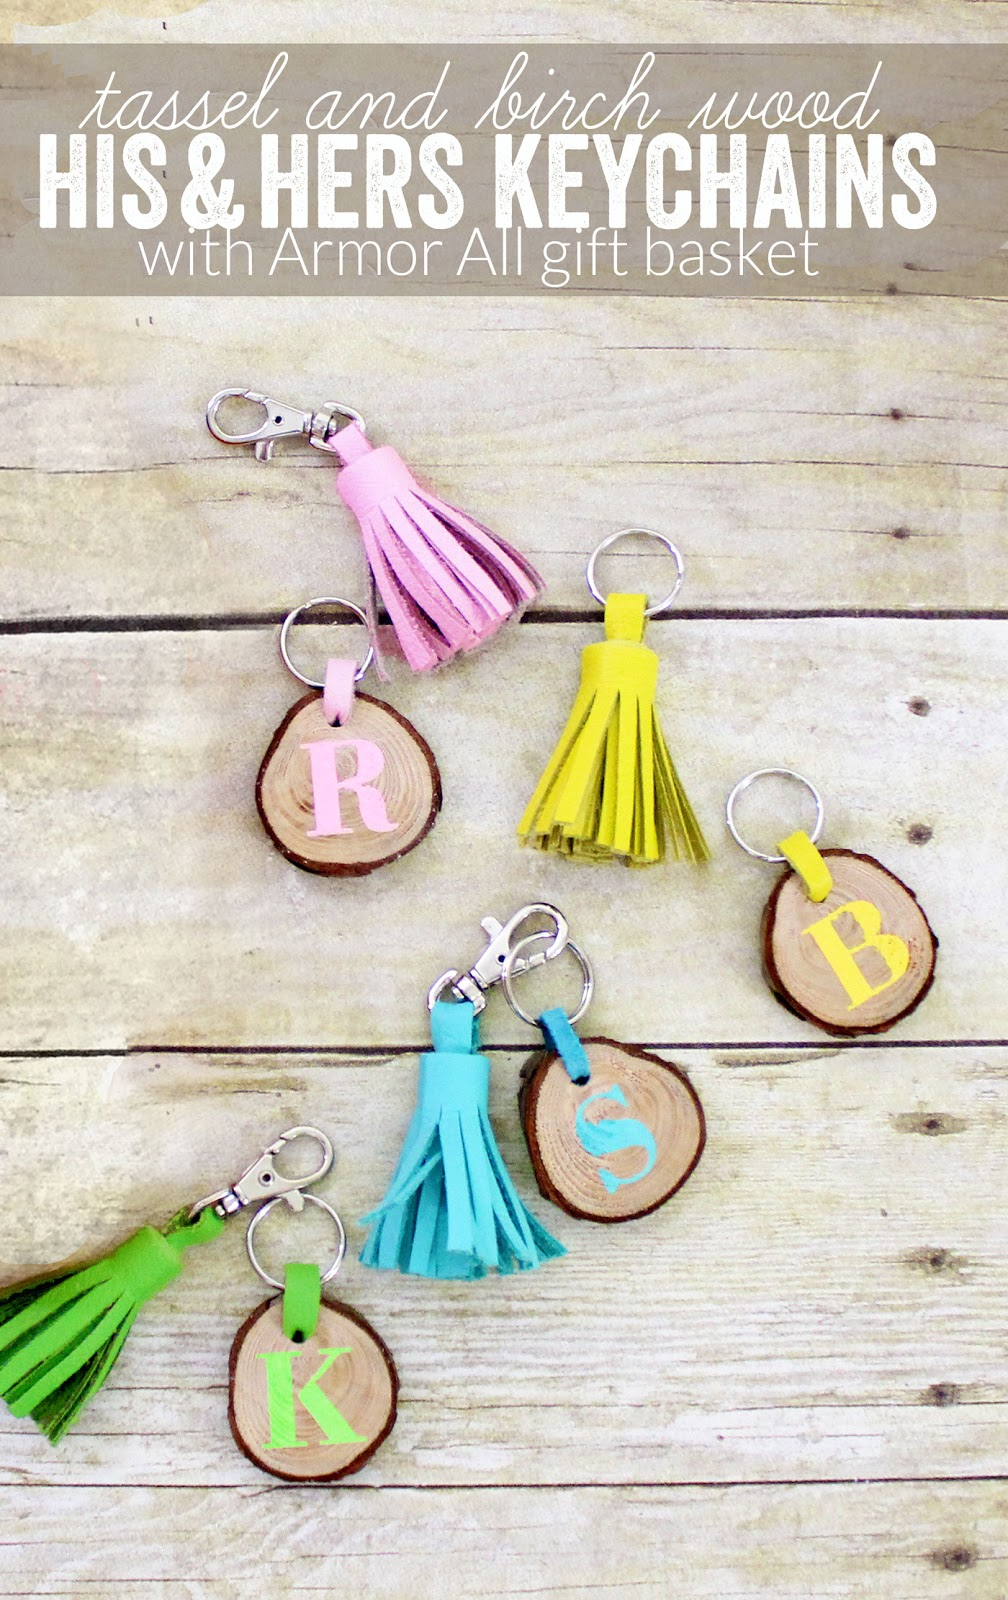 Matching his and hers tassel and birch wood slice monogrammed personalized keychains.